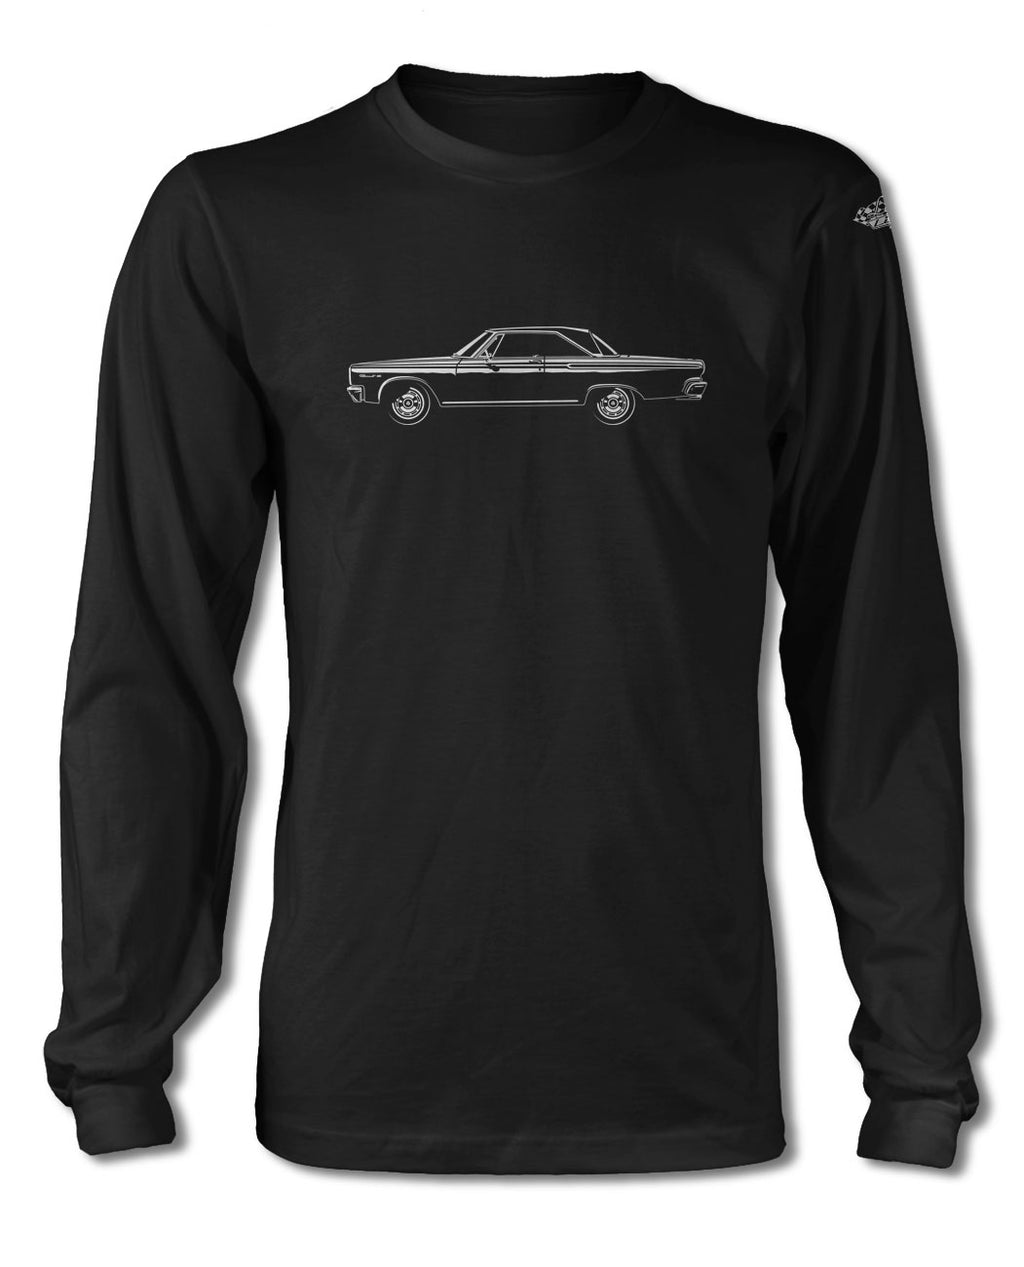 1965 Dodge Coronet 440 Hardtop T-Shirt - Long Sleeves - Side View